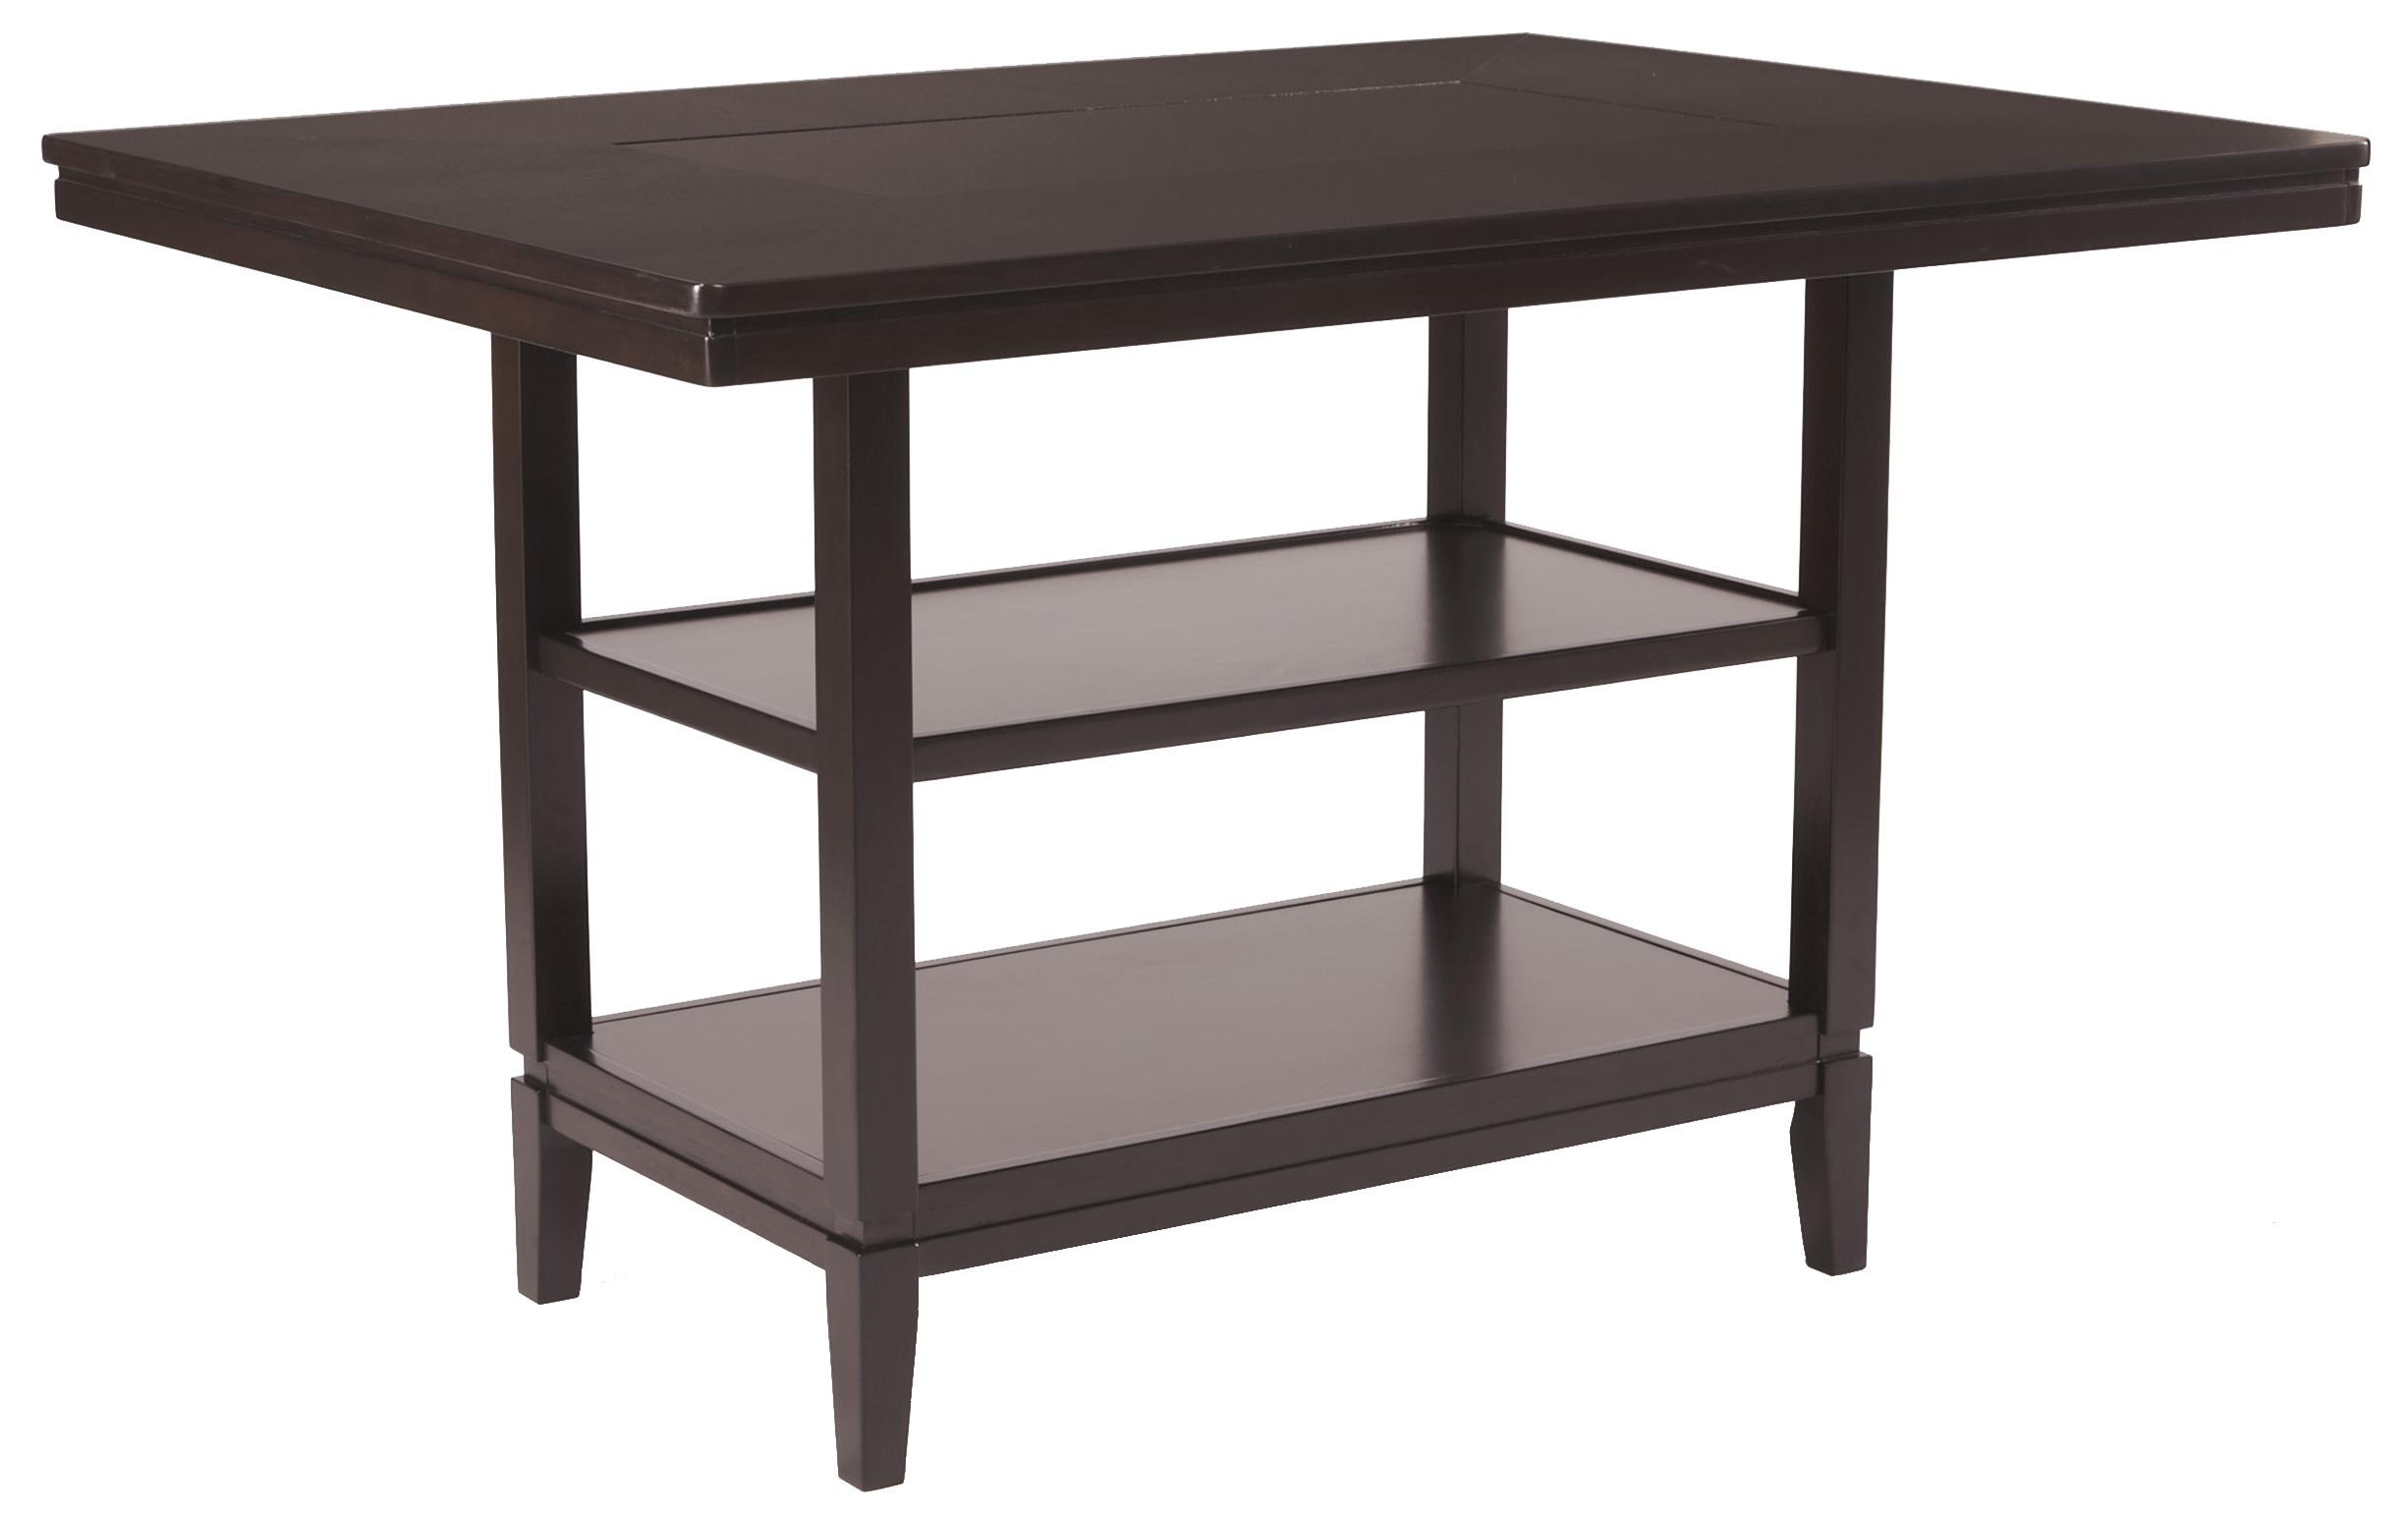 Ashley Furniture Trishelle Rectangular Dining Room Counter